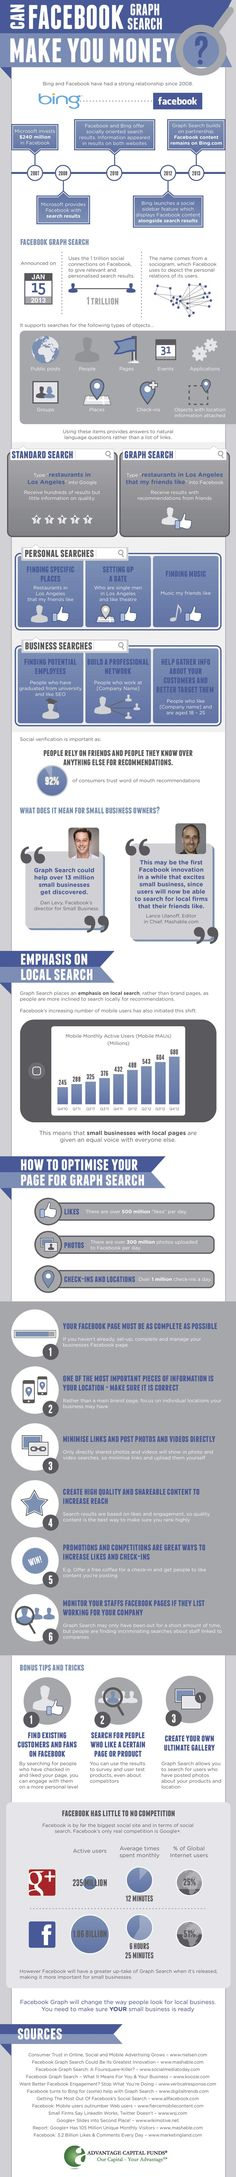 Can Facebook Graph Search Make You Money? #Infographic